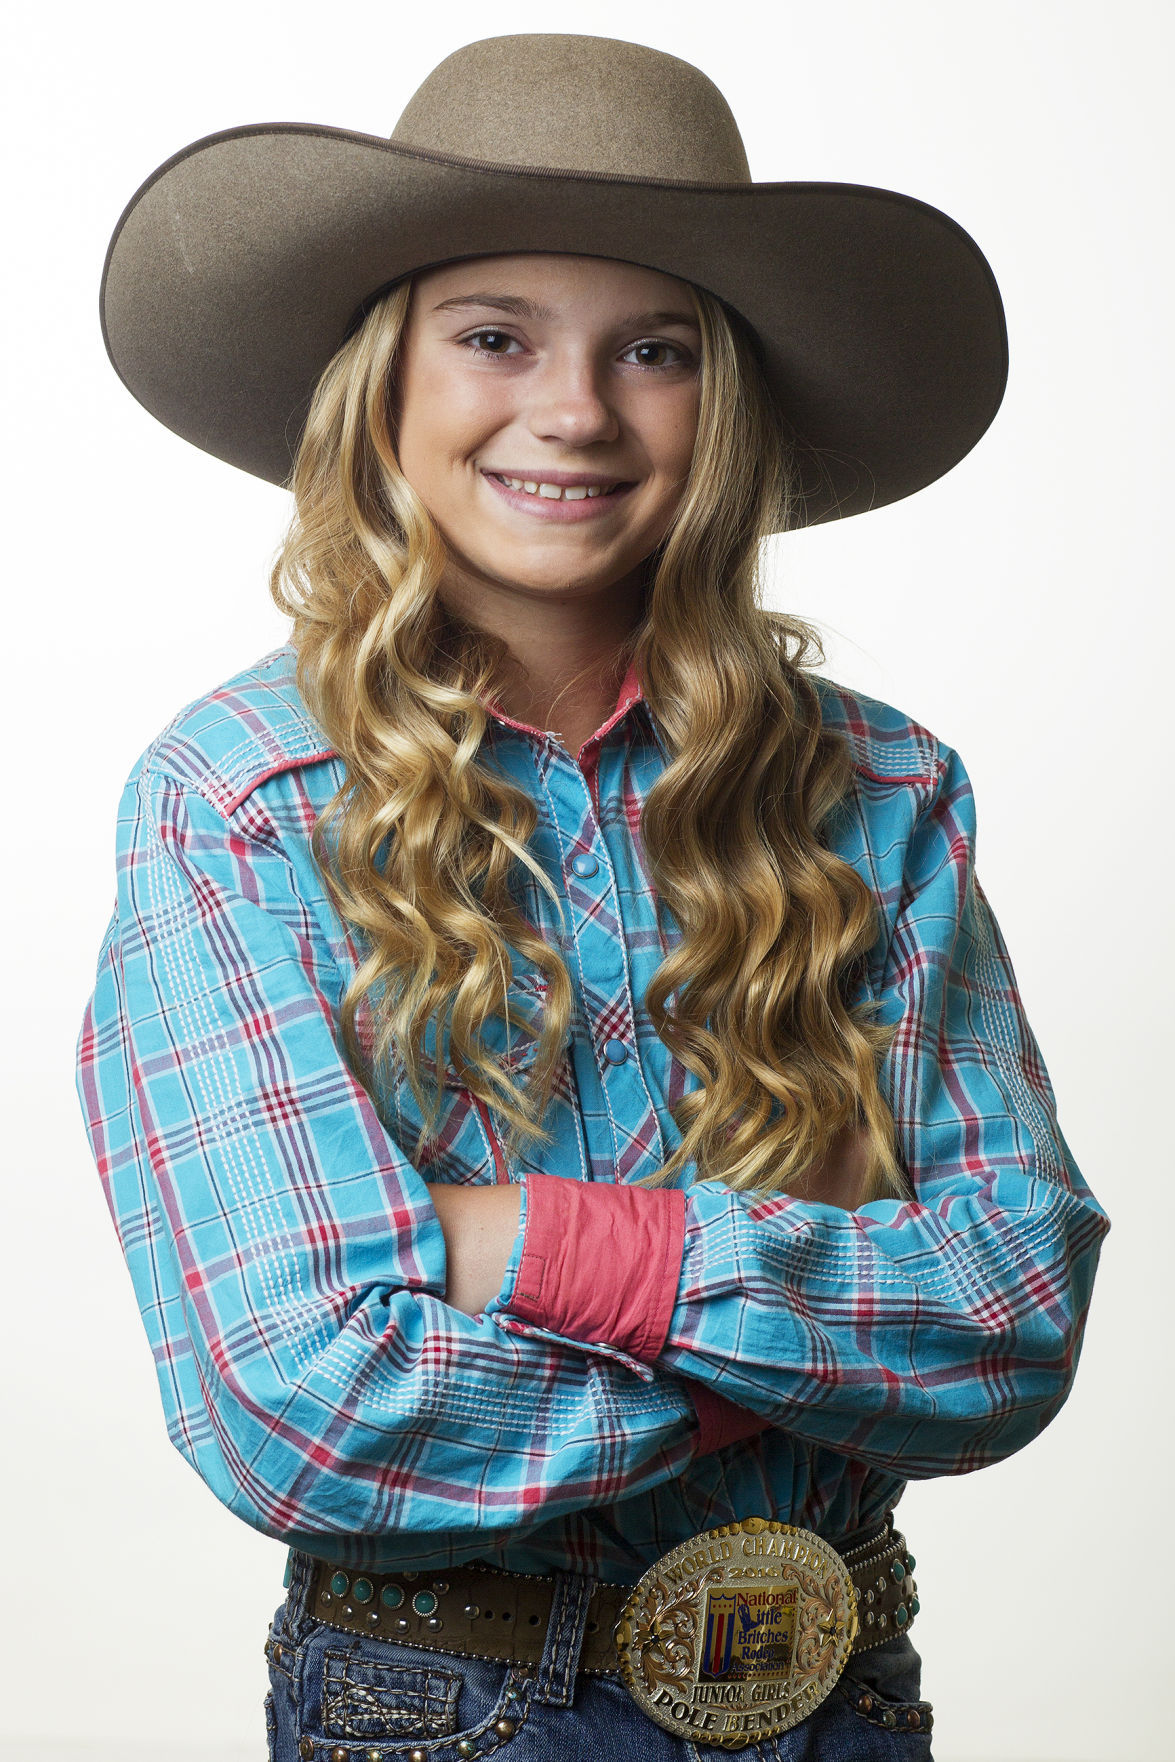 Cowgirl Ashlyn Goven 11 Becomes Two Time World Champion